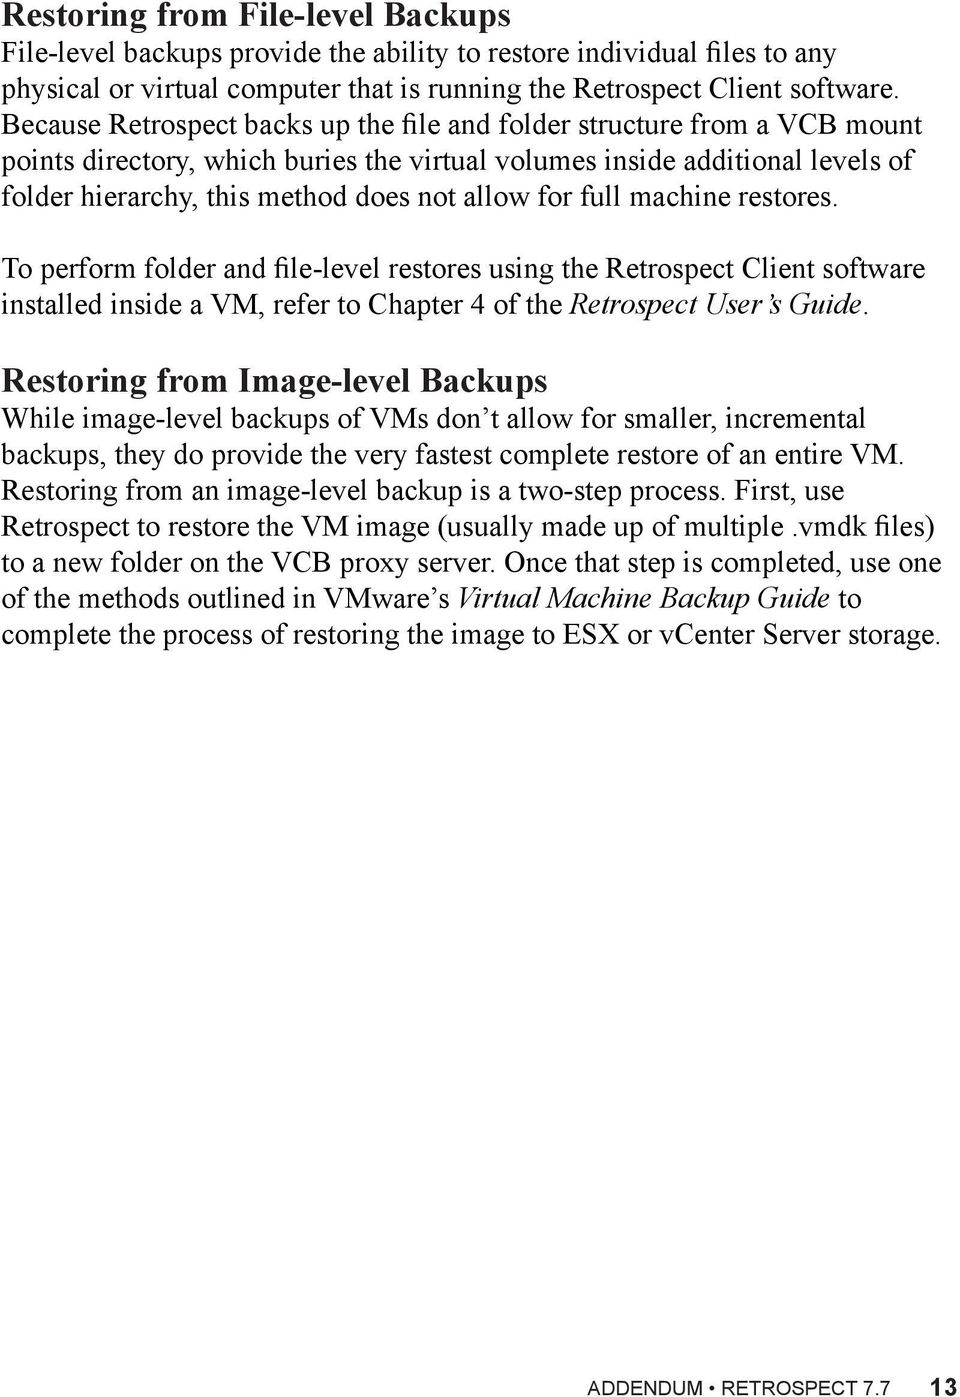 for full machine restores. To perform folder and file-level restores using the Retrospect Client software installed inside a VM, refer to Chapter 4 of the Retrospect User s Guide.